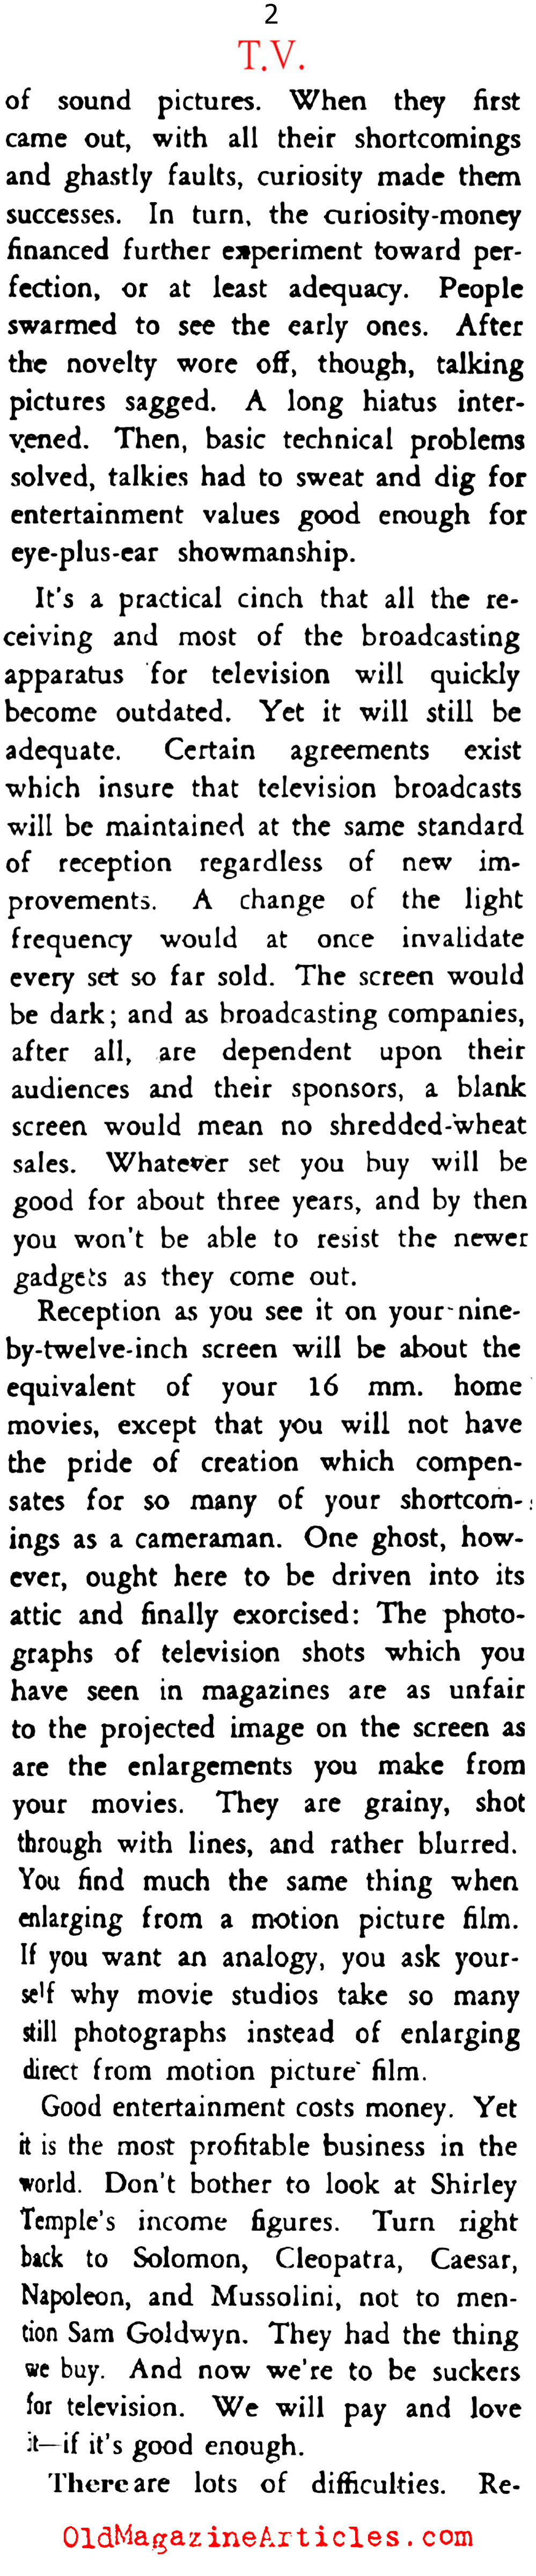 Anticipating the Television Juggernaut  (Stage Magazine, 1939)